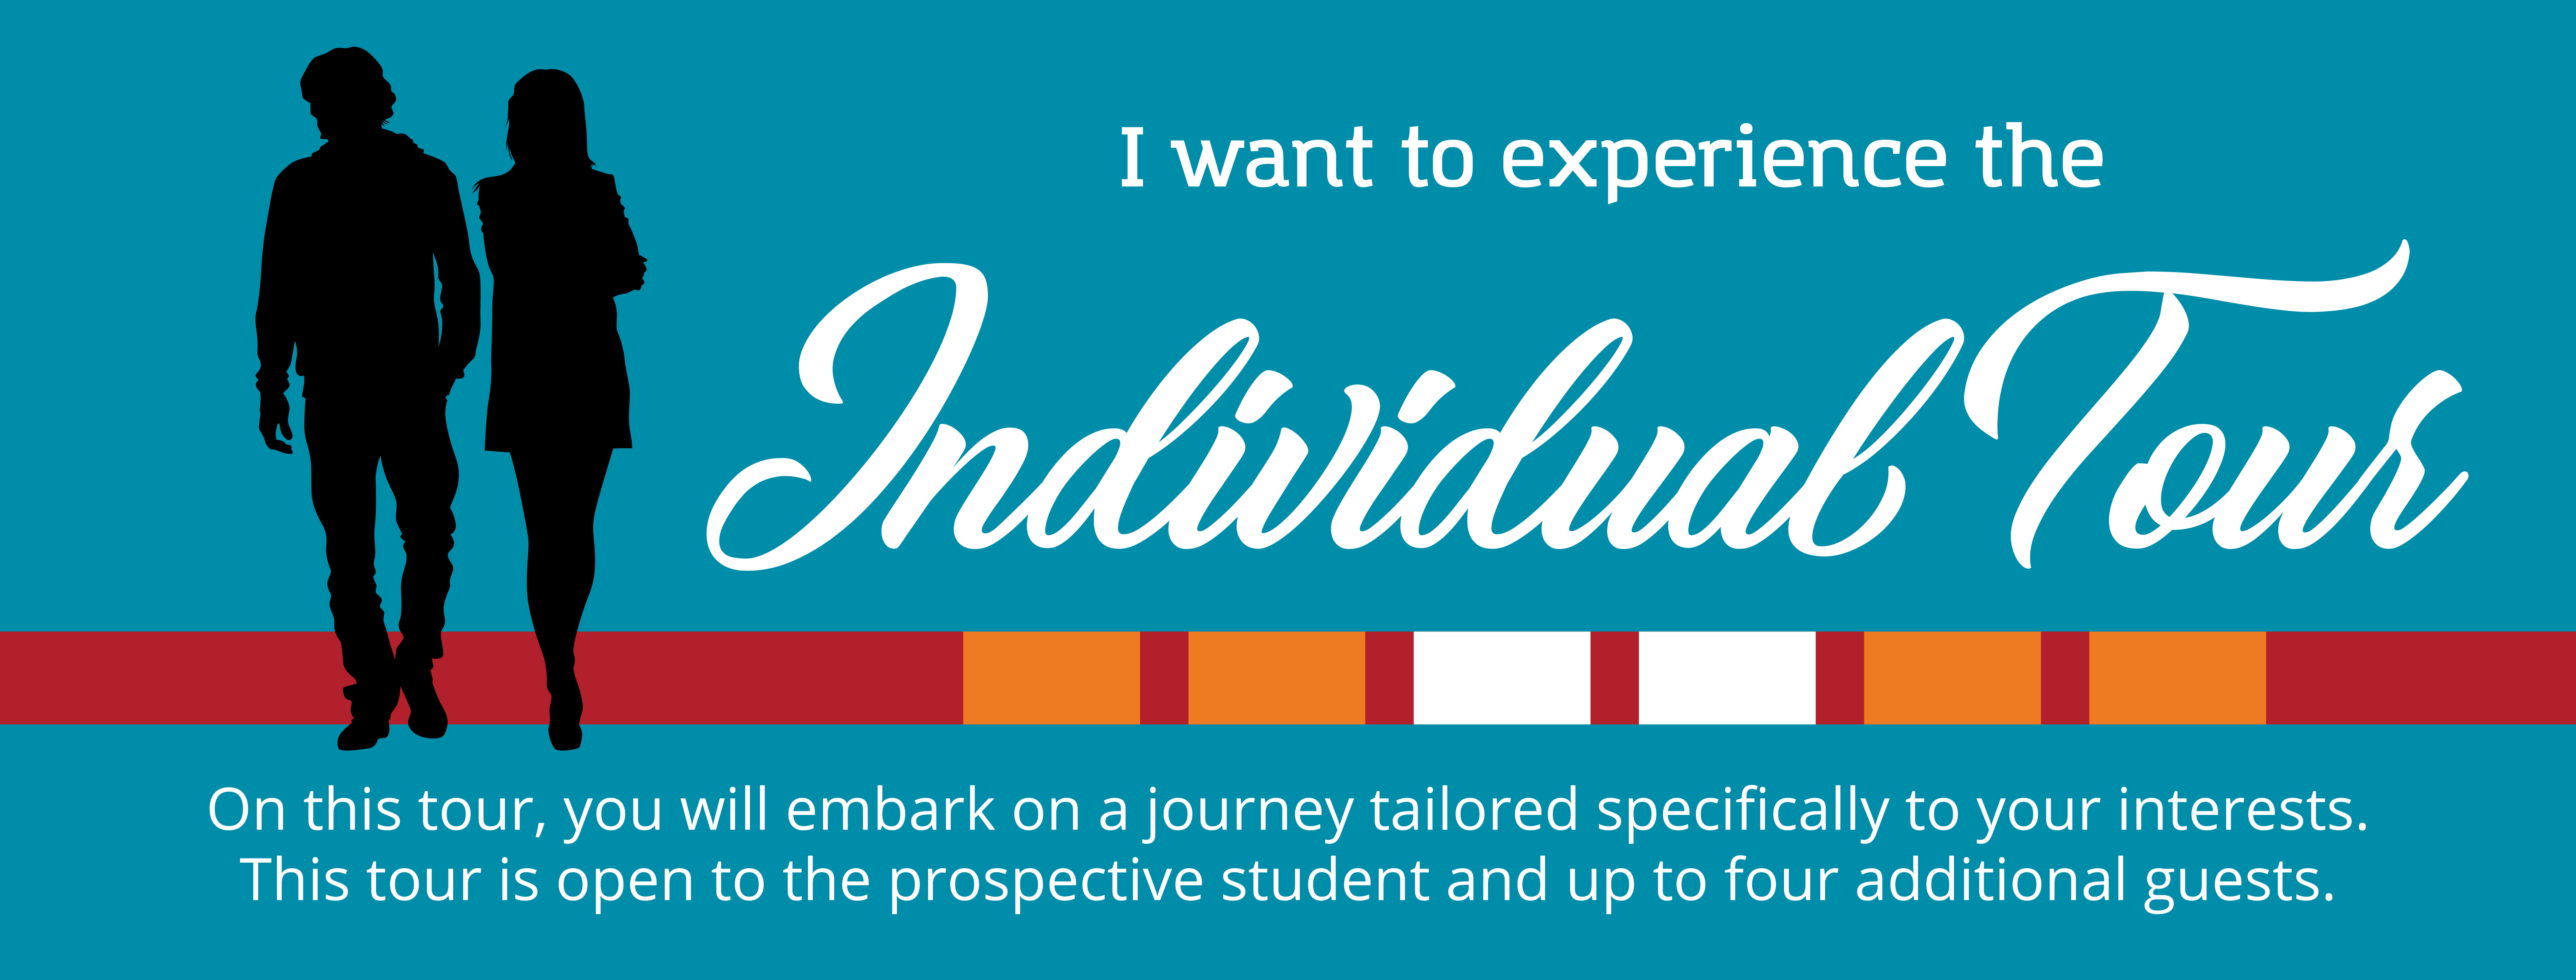 Individual Tour button. Click here to experience the individual tour. On this tour you will embark on a journey tailored specifically to your interests. This tour is open to the prospective student and up to four additional guests.